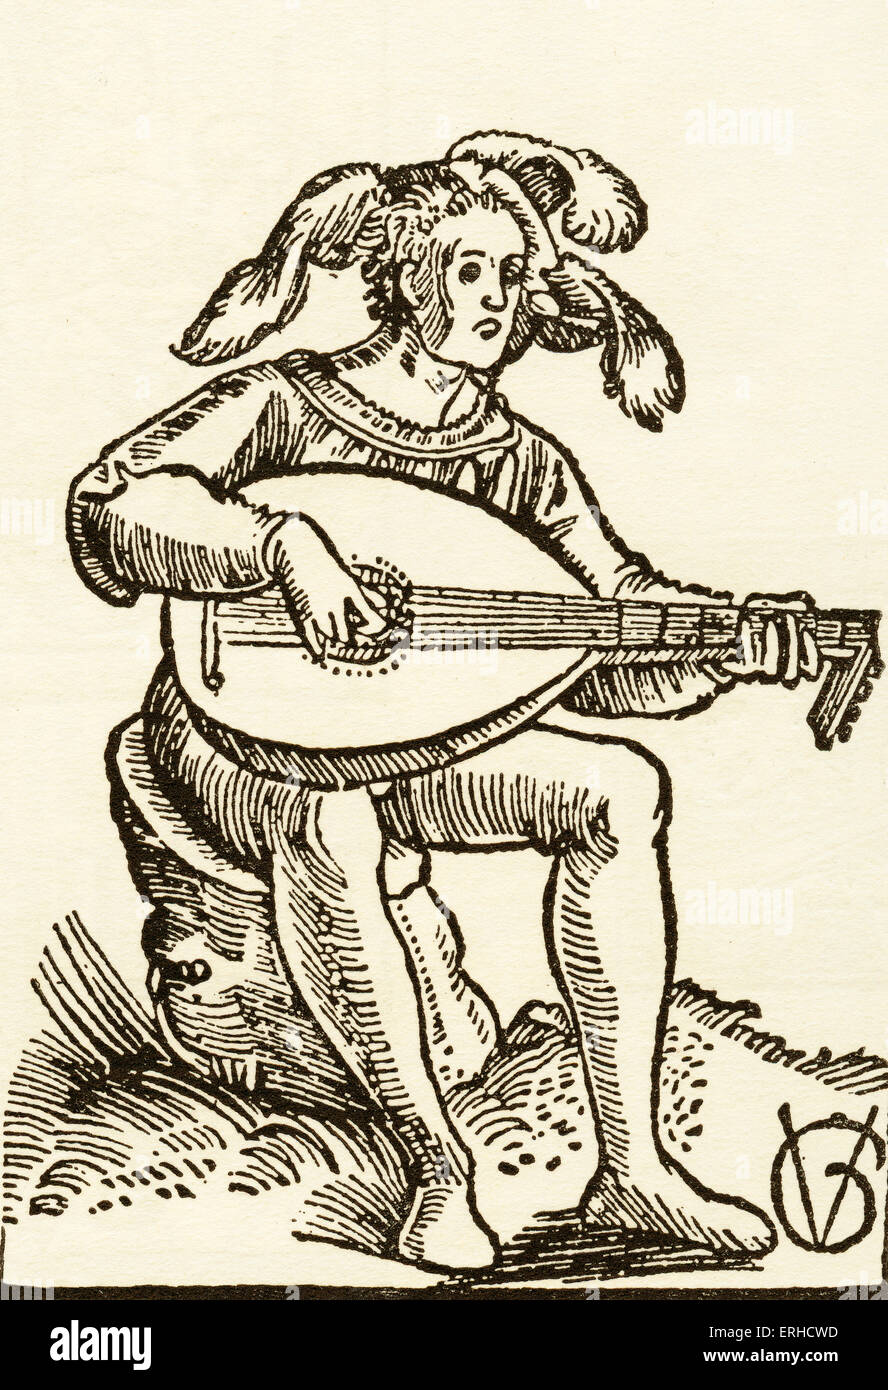 The Lute-Player, woodcut by Urs Graf, 1511. Illustration from a guide to lute-playing. Seated man in headdress or - Stock Image